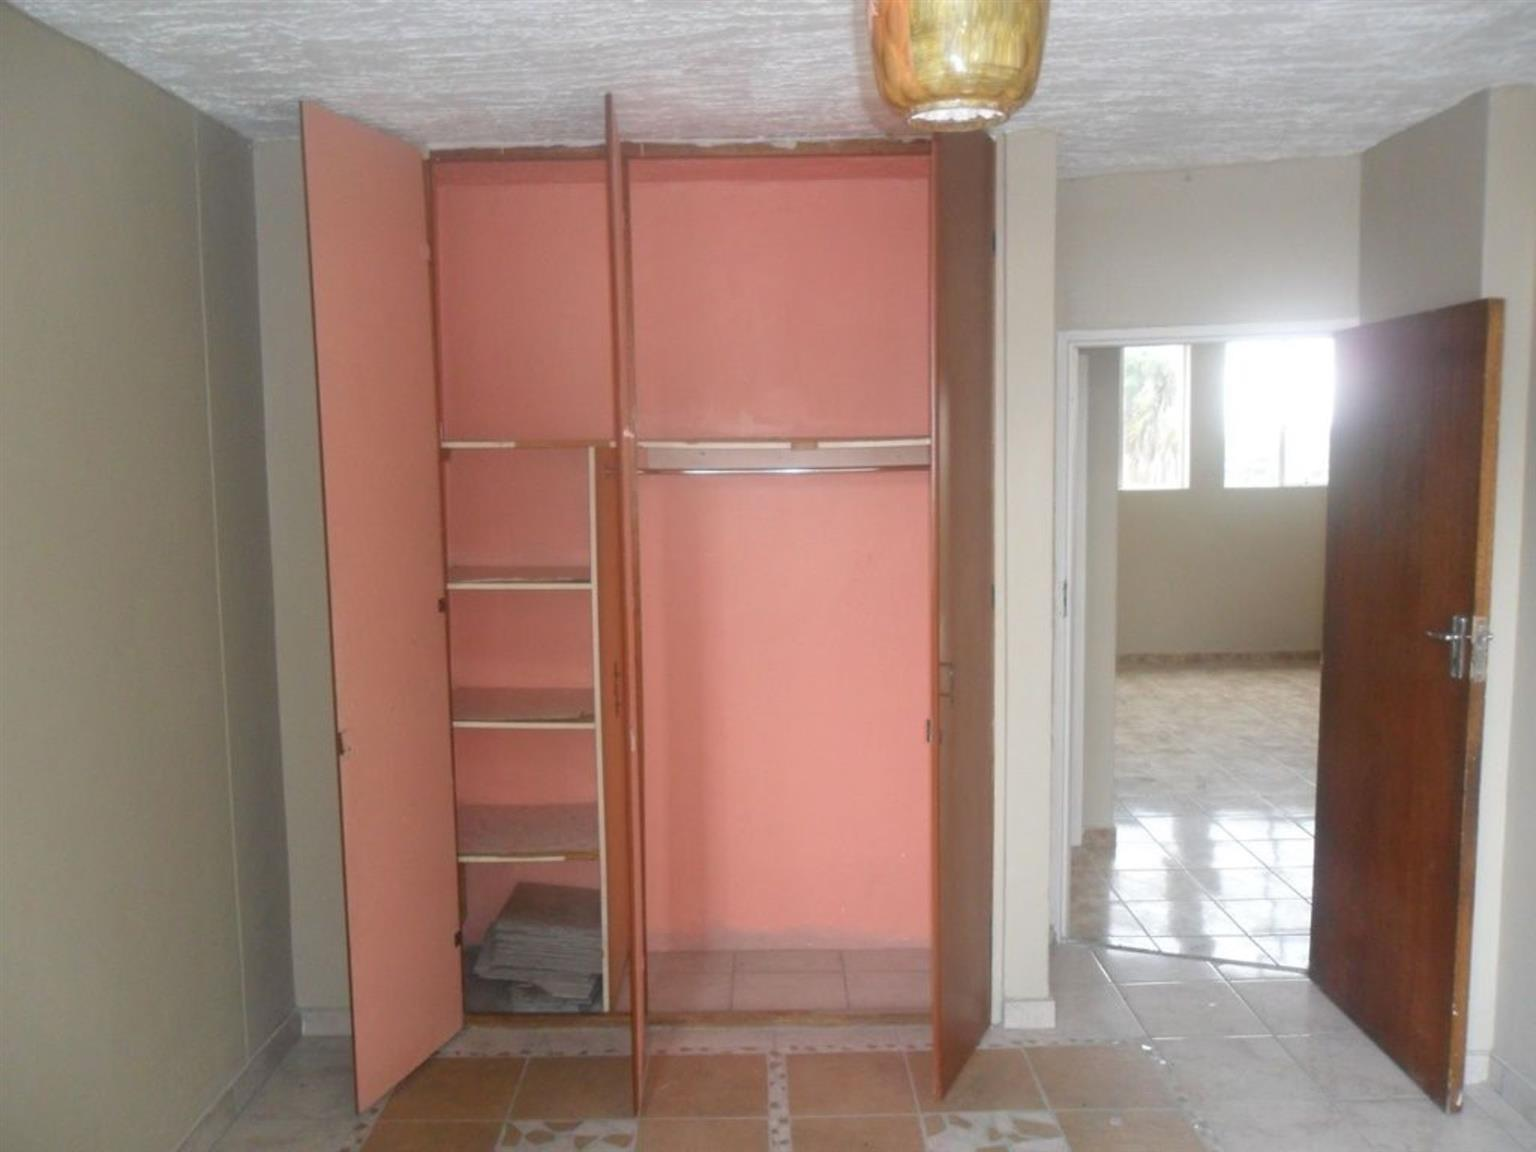 House Rental Monthly in SILVERTON